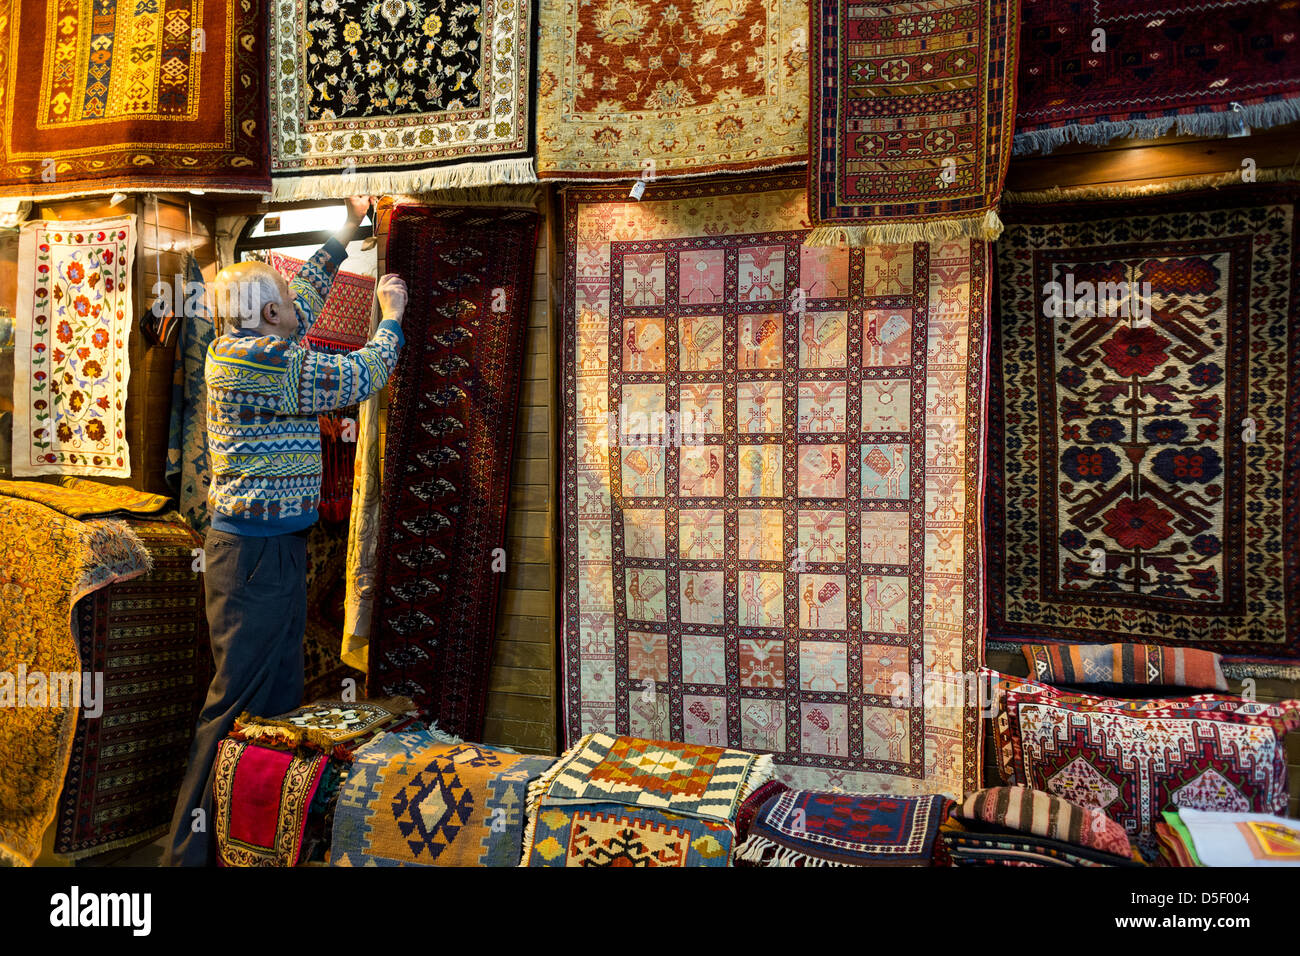 Carpet Stores Stock Photos   Carpet Stores Stock Images   Alamy Grand Bazaar  Kapali Carsi  Istanbul  Turkey   Stock Image